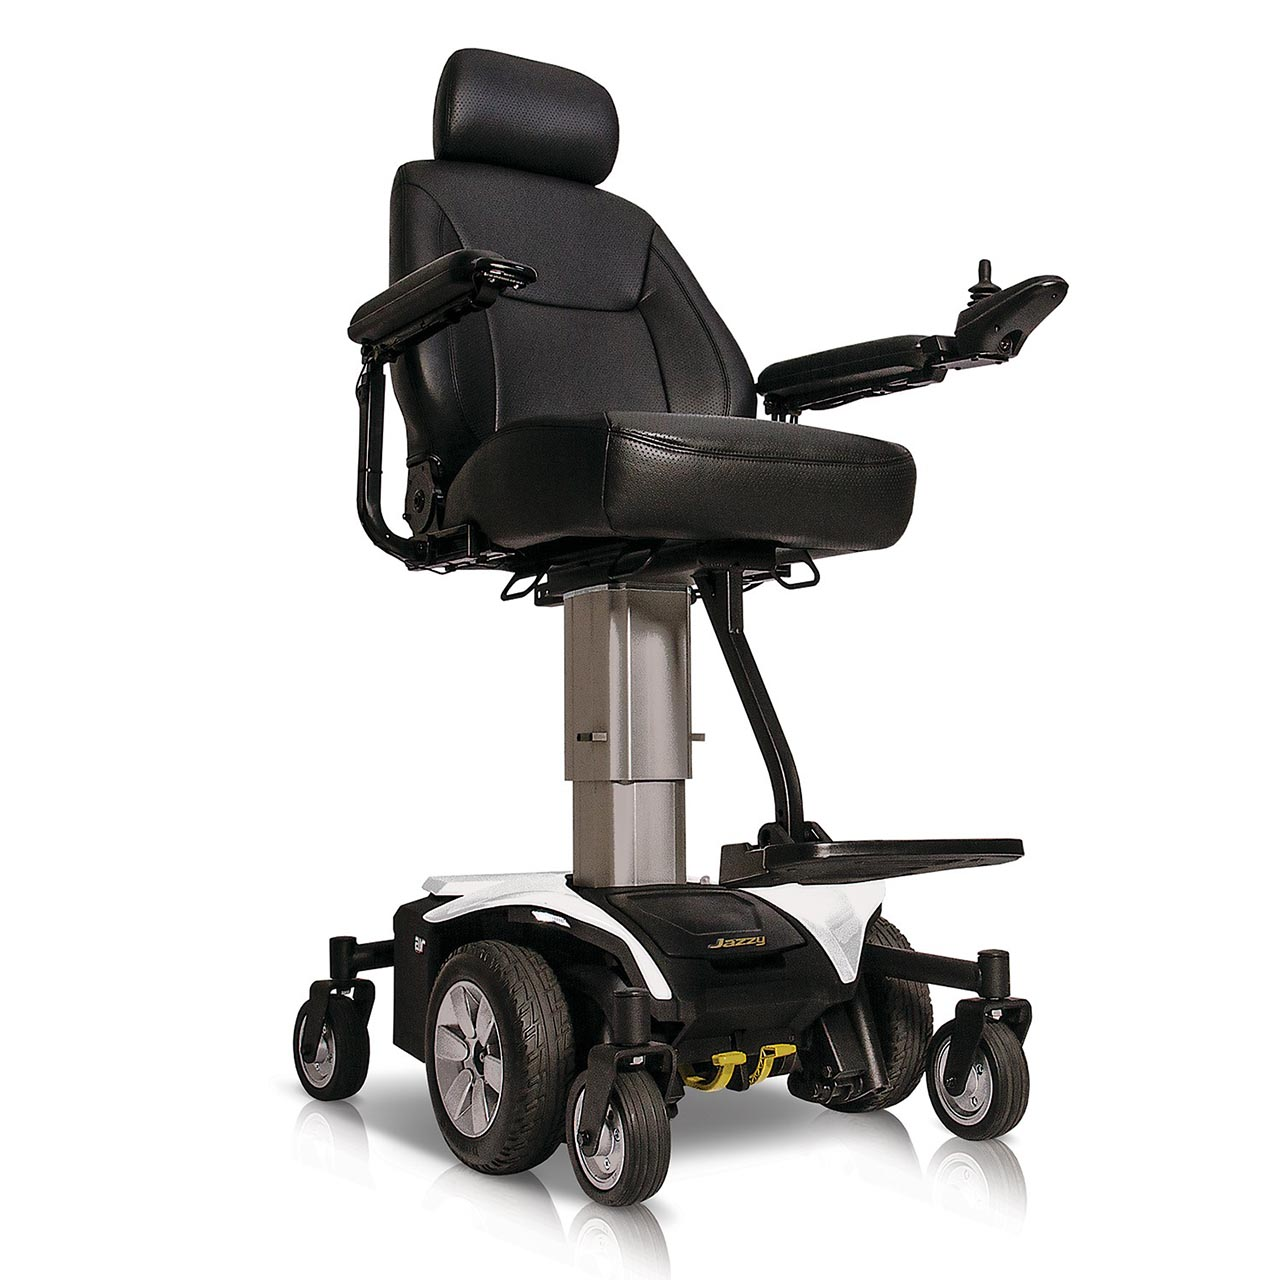 Fauteuils Pride Pride Jazzy Air Powerchair Electirc Wheelchair For Hire Or